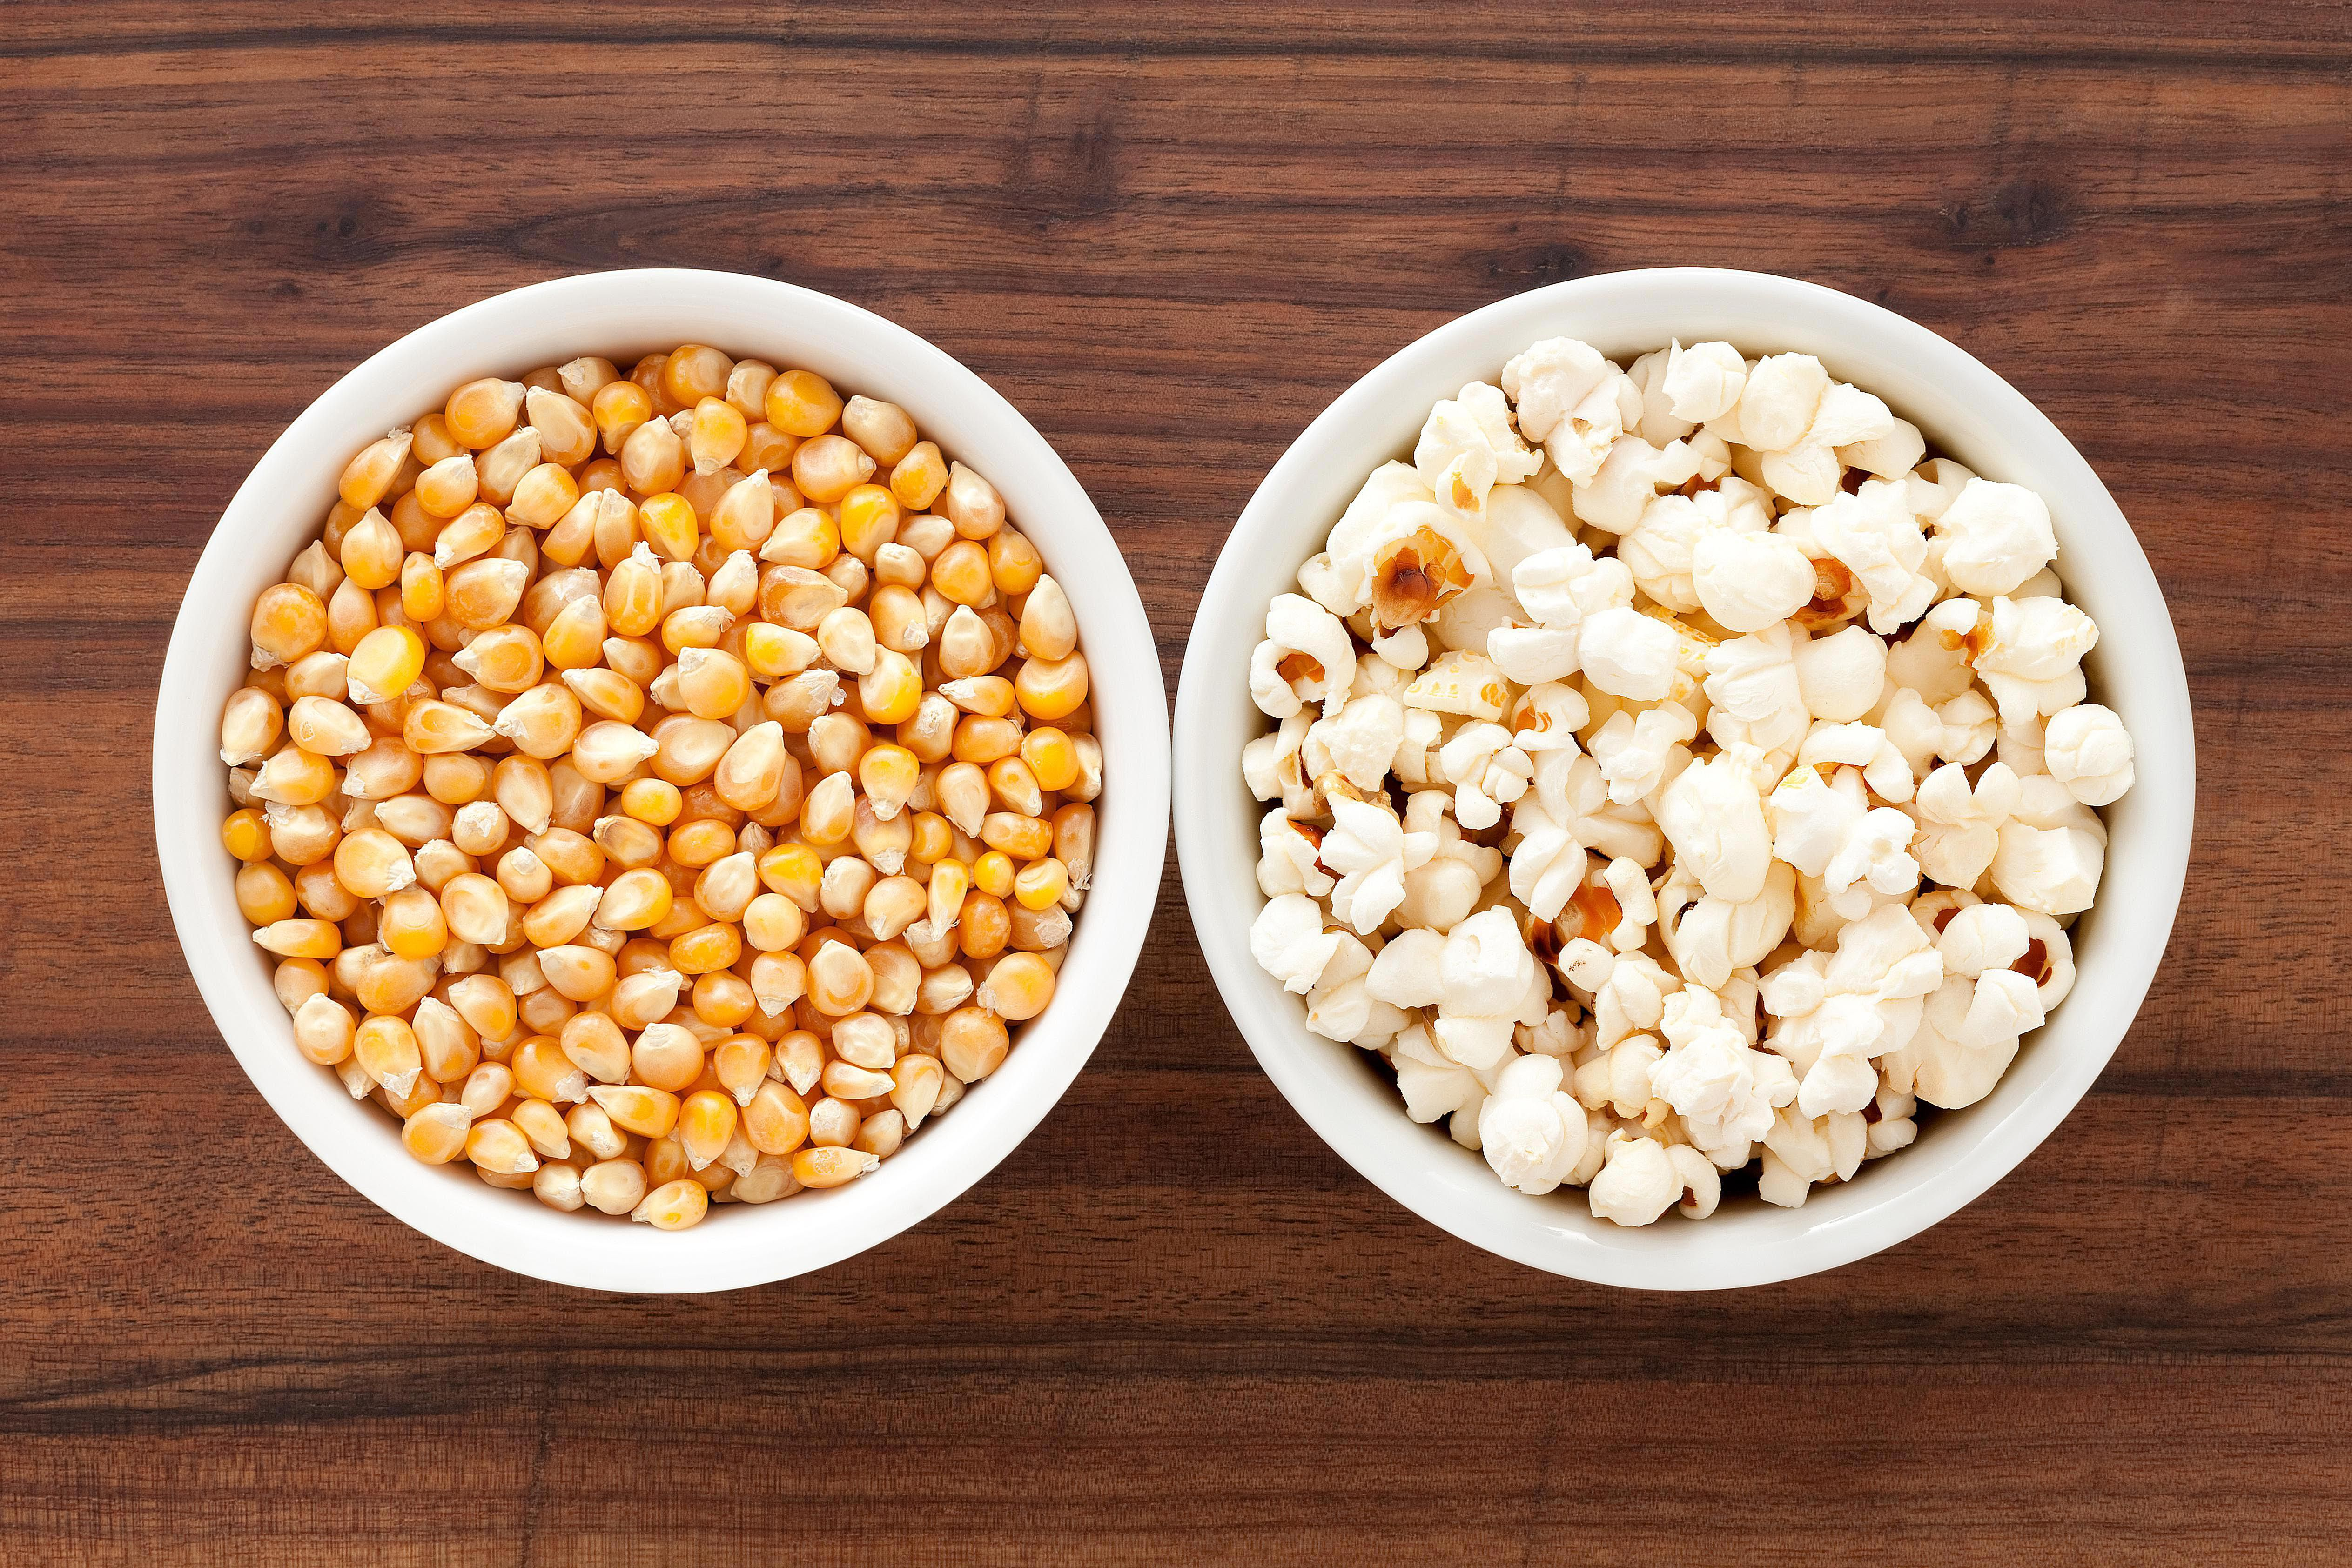 A bowl of corn and a bowl of popcorn